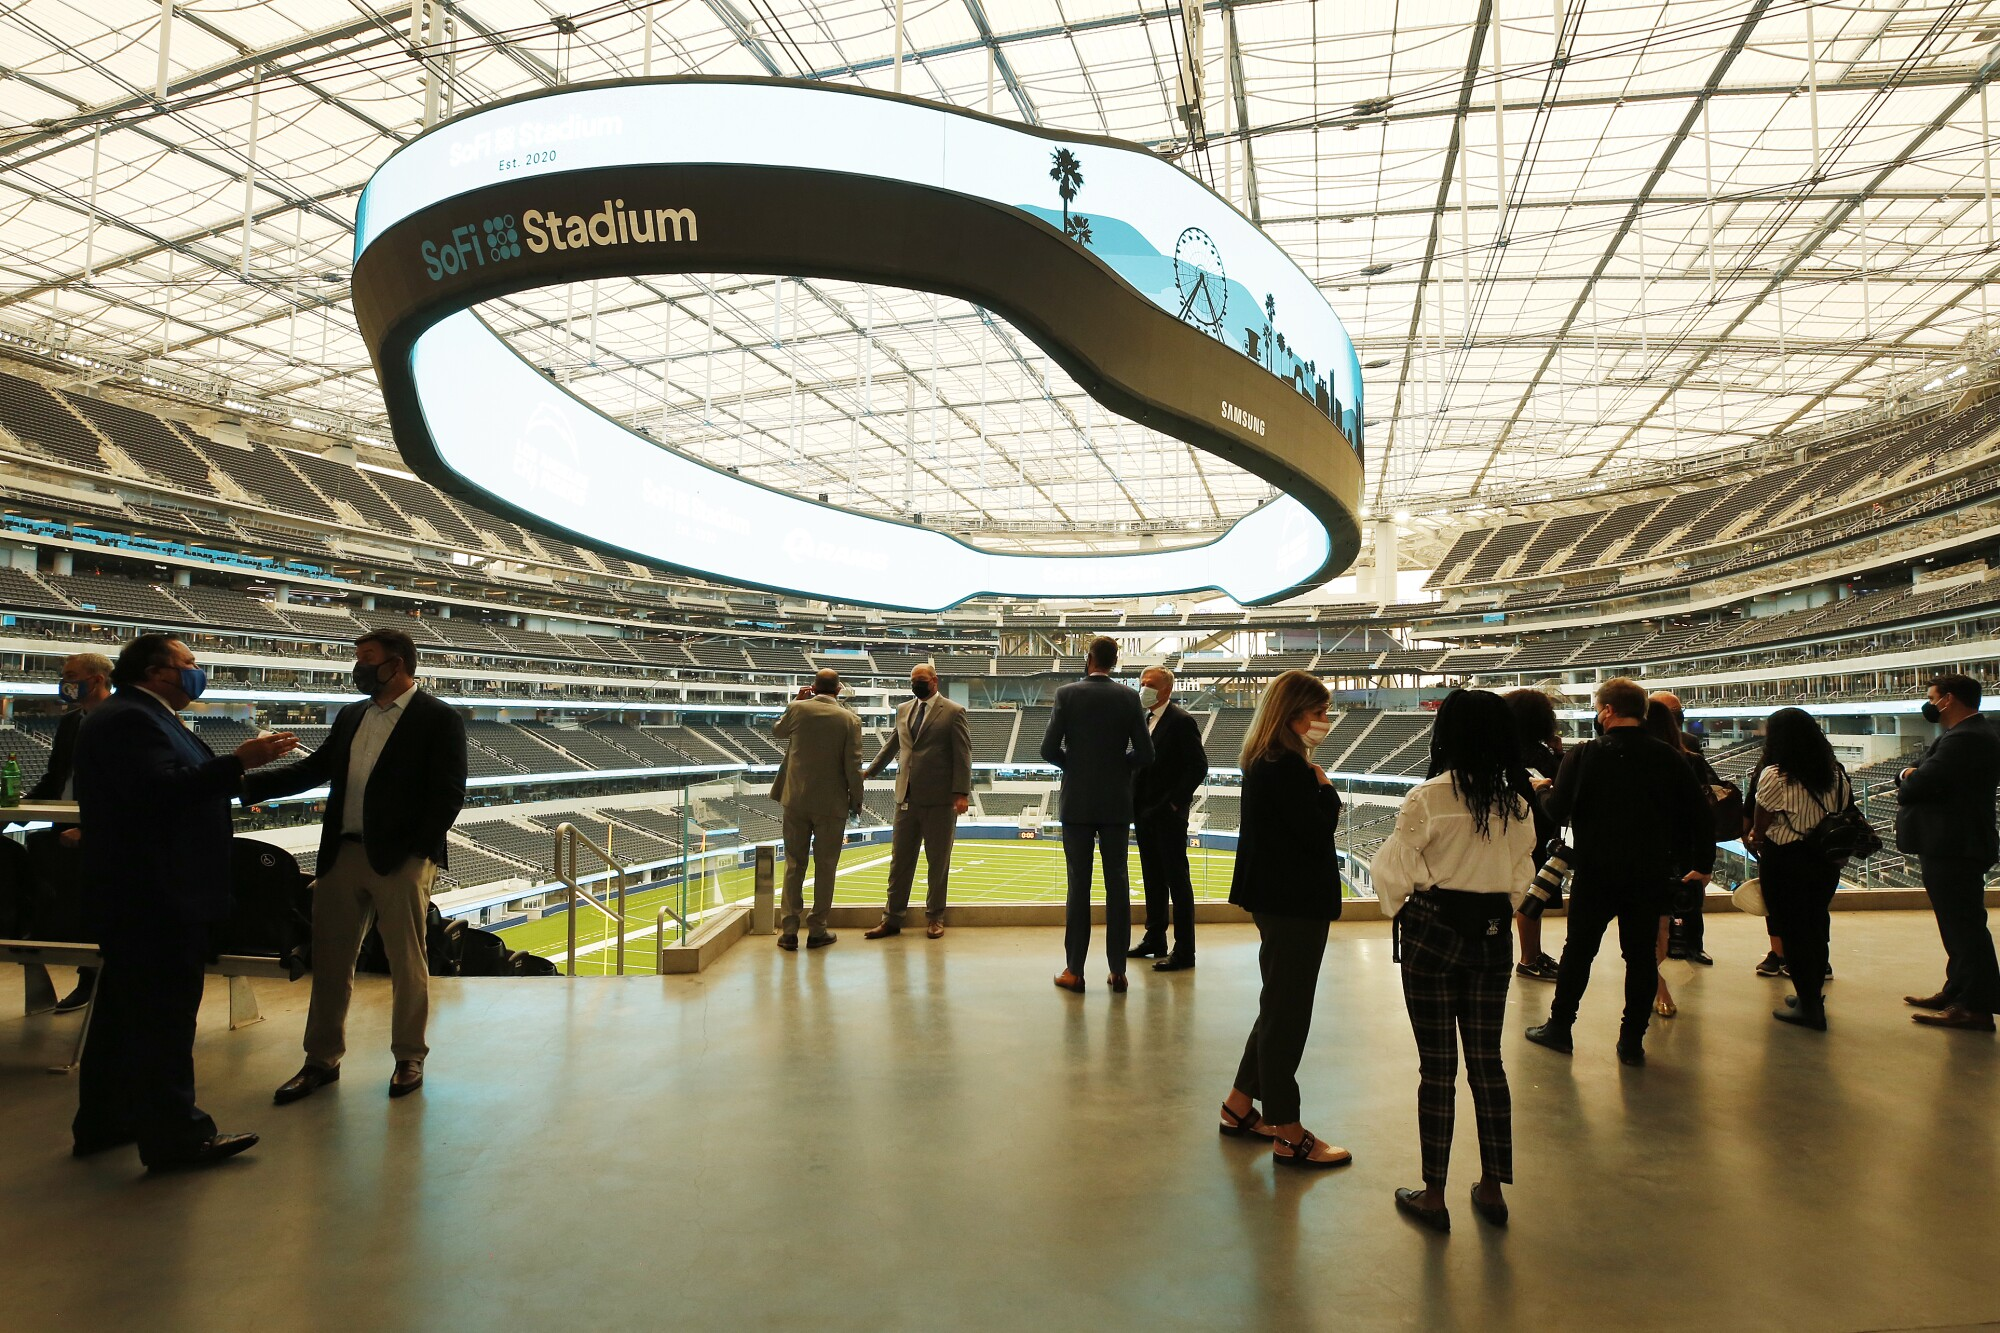 The Los Angeles Rams and Los Angeles Chargers hosted the ribbon-cutting ceremony for the new SoFi Stadium in Inglewood.